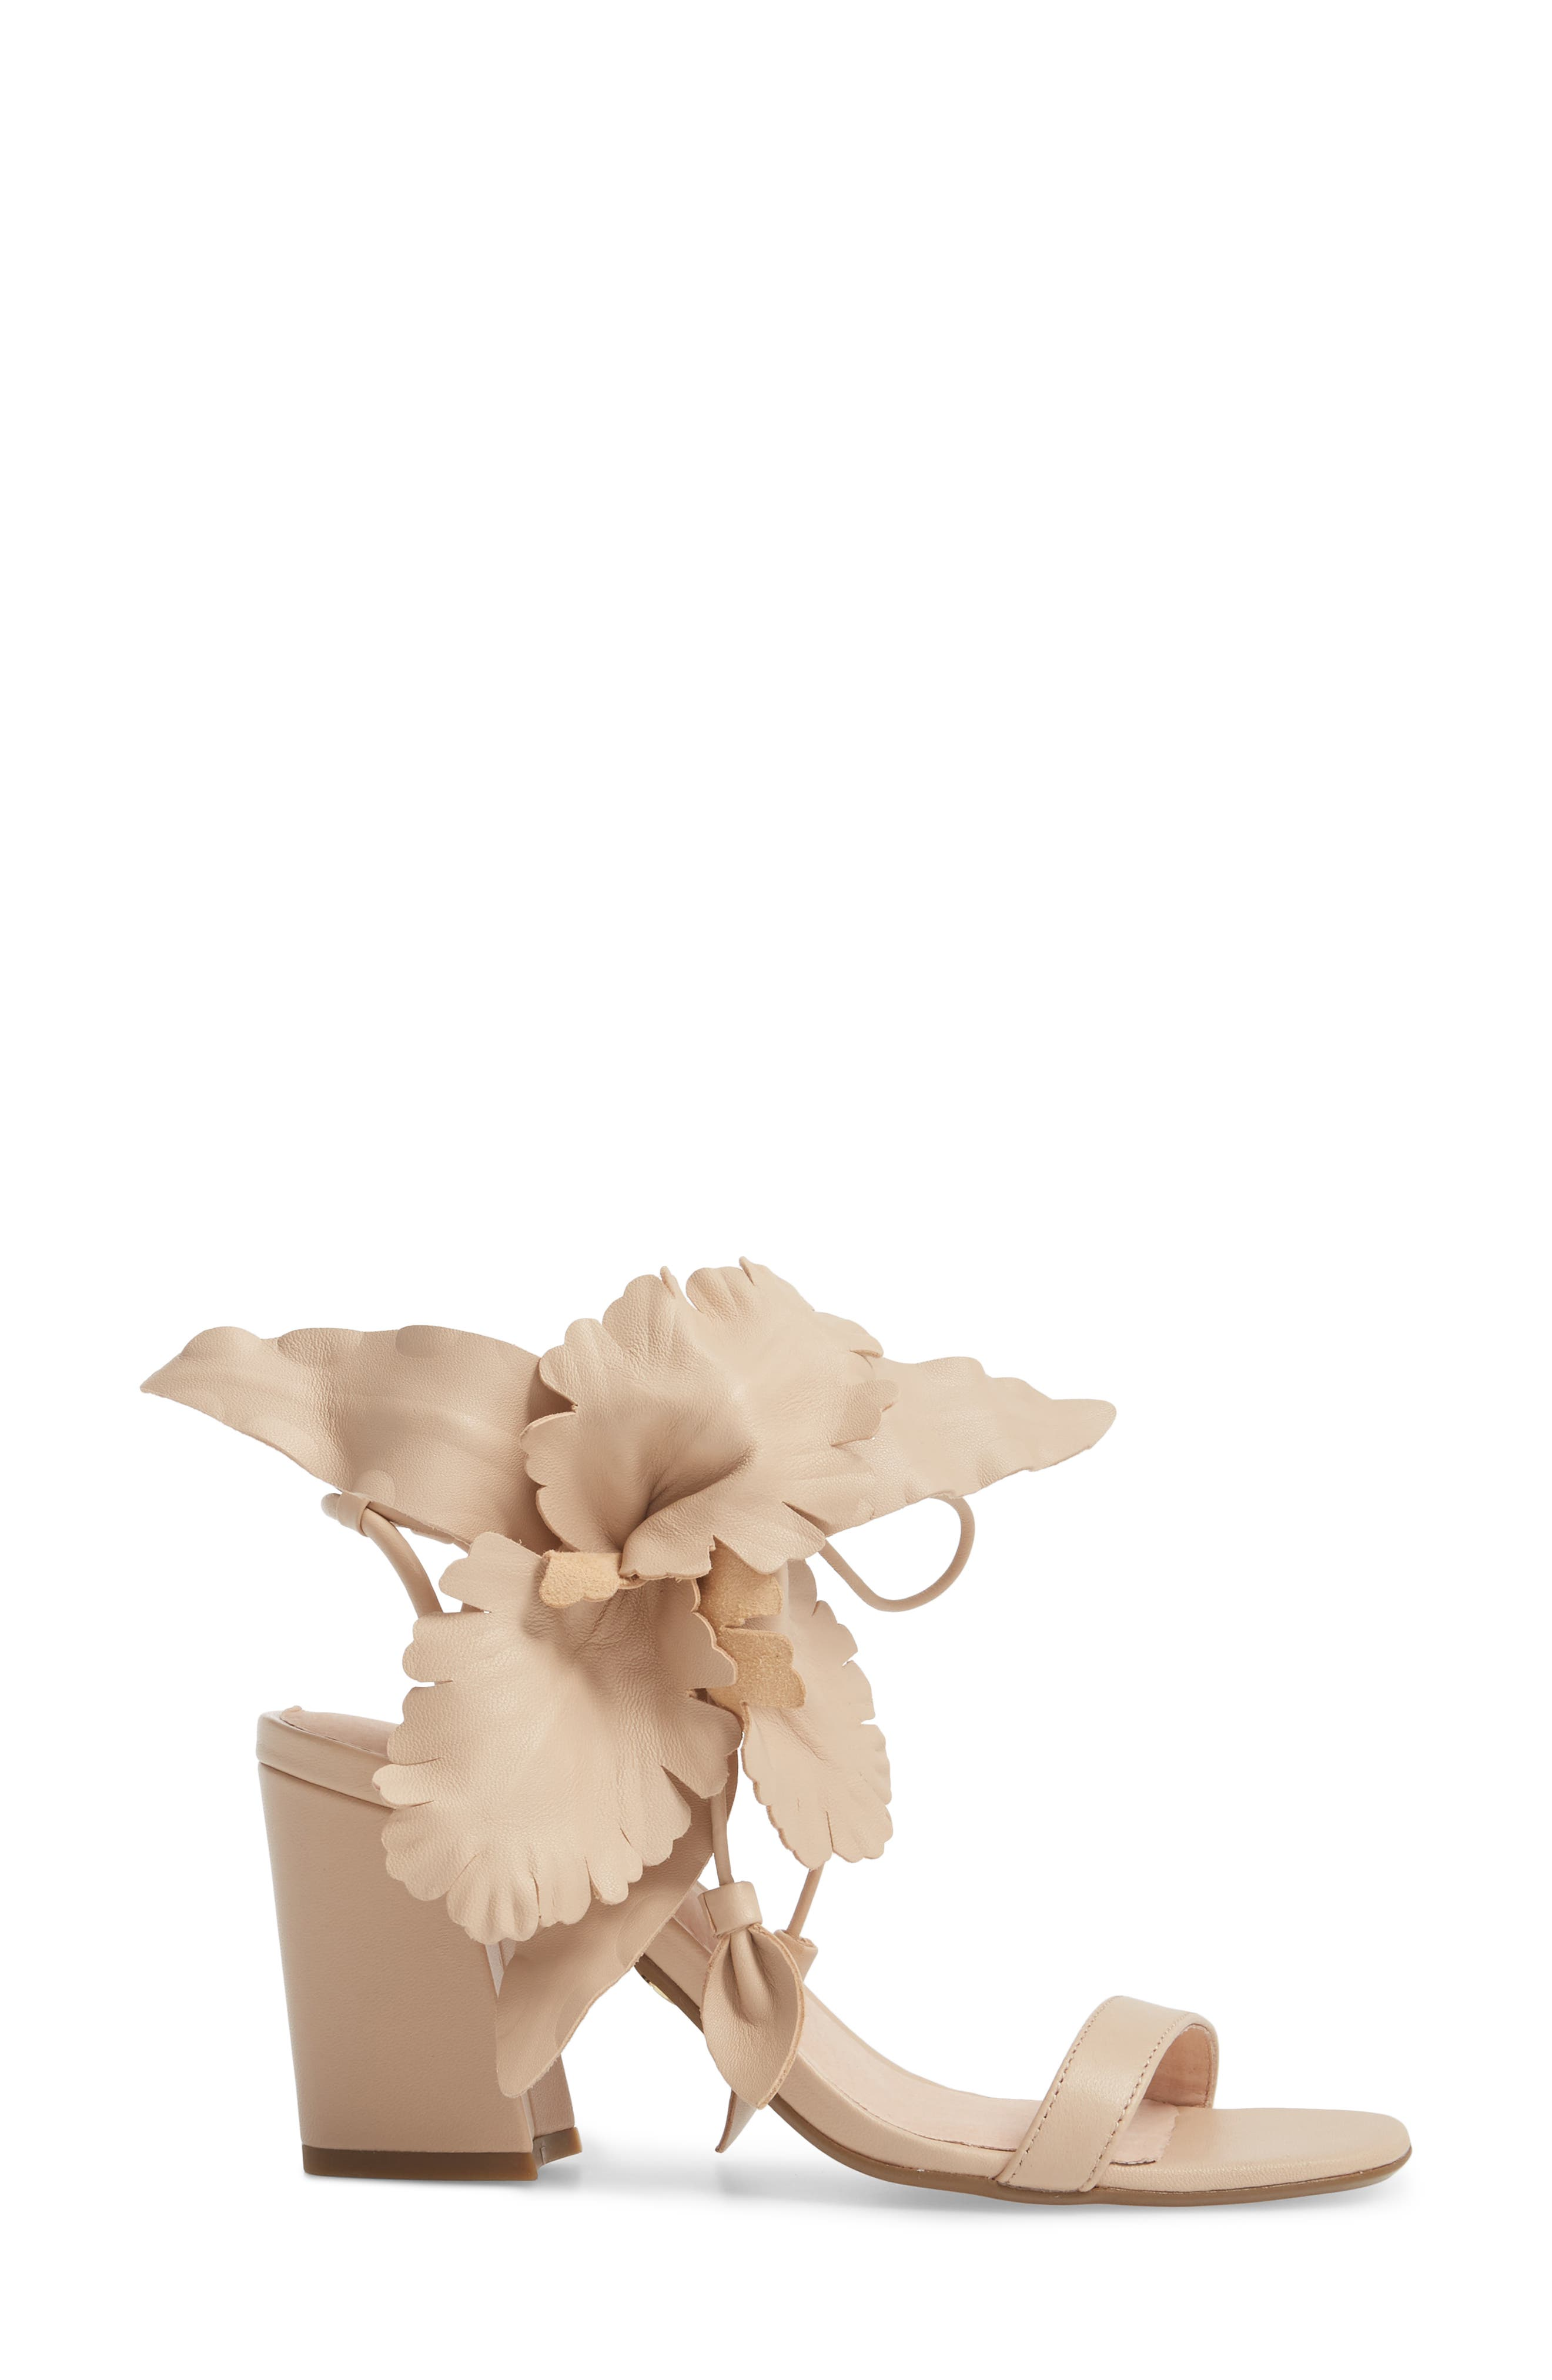 Hibiscus Sandal,                             Alternate thumbnail 3, color,                             Nude Leather